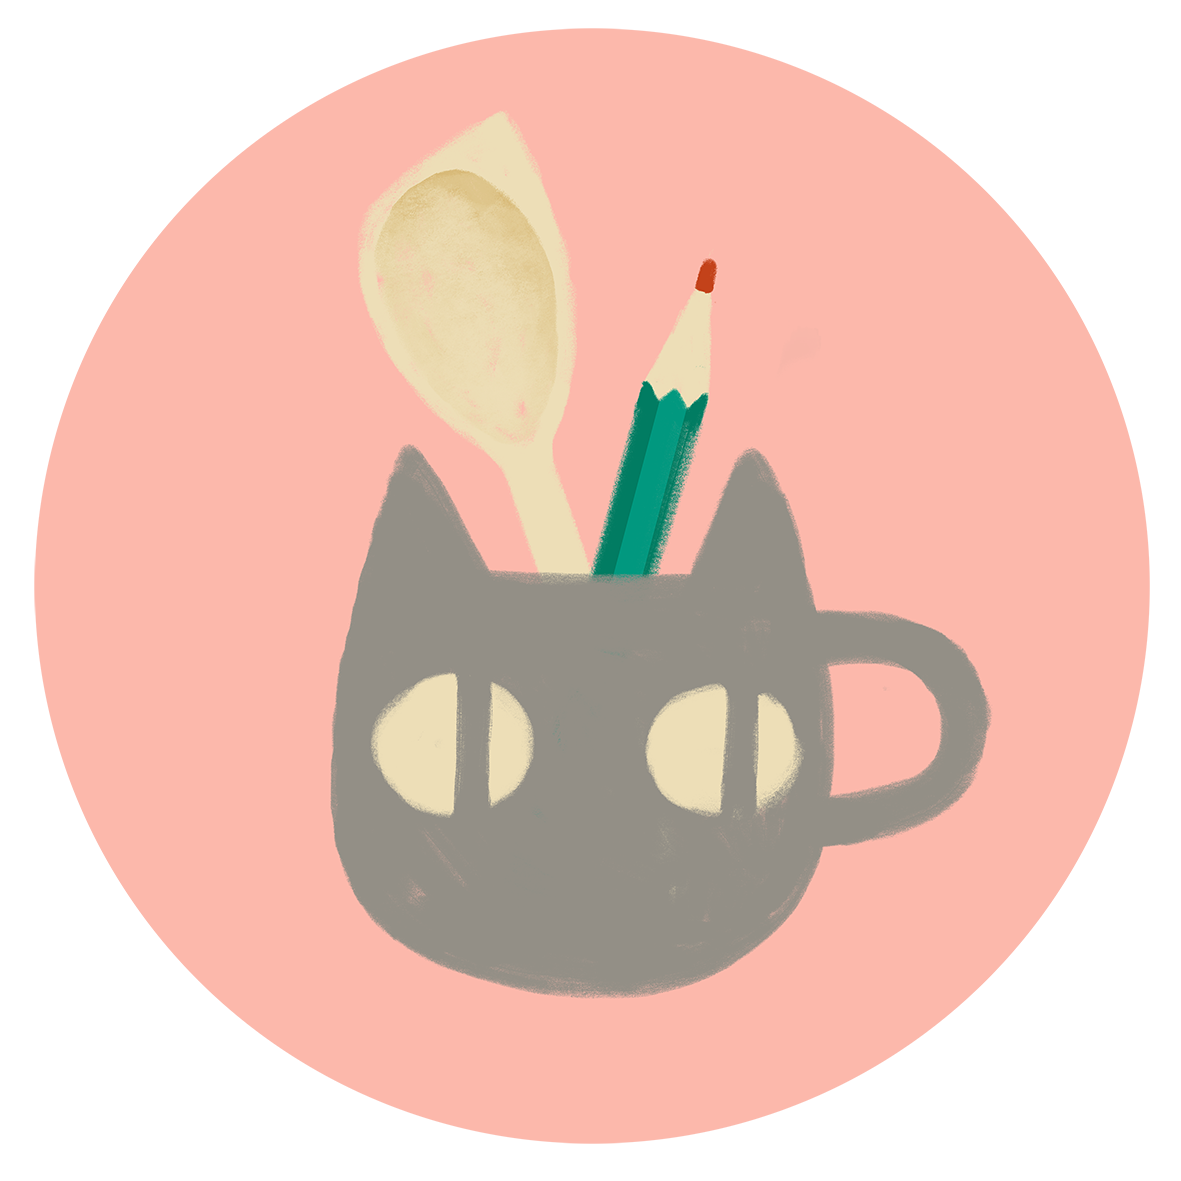 Kaffekatten grafisk design & illustration